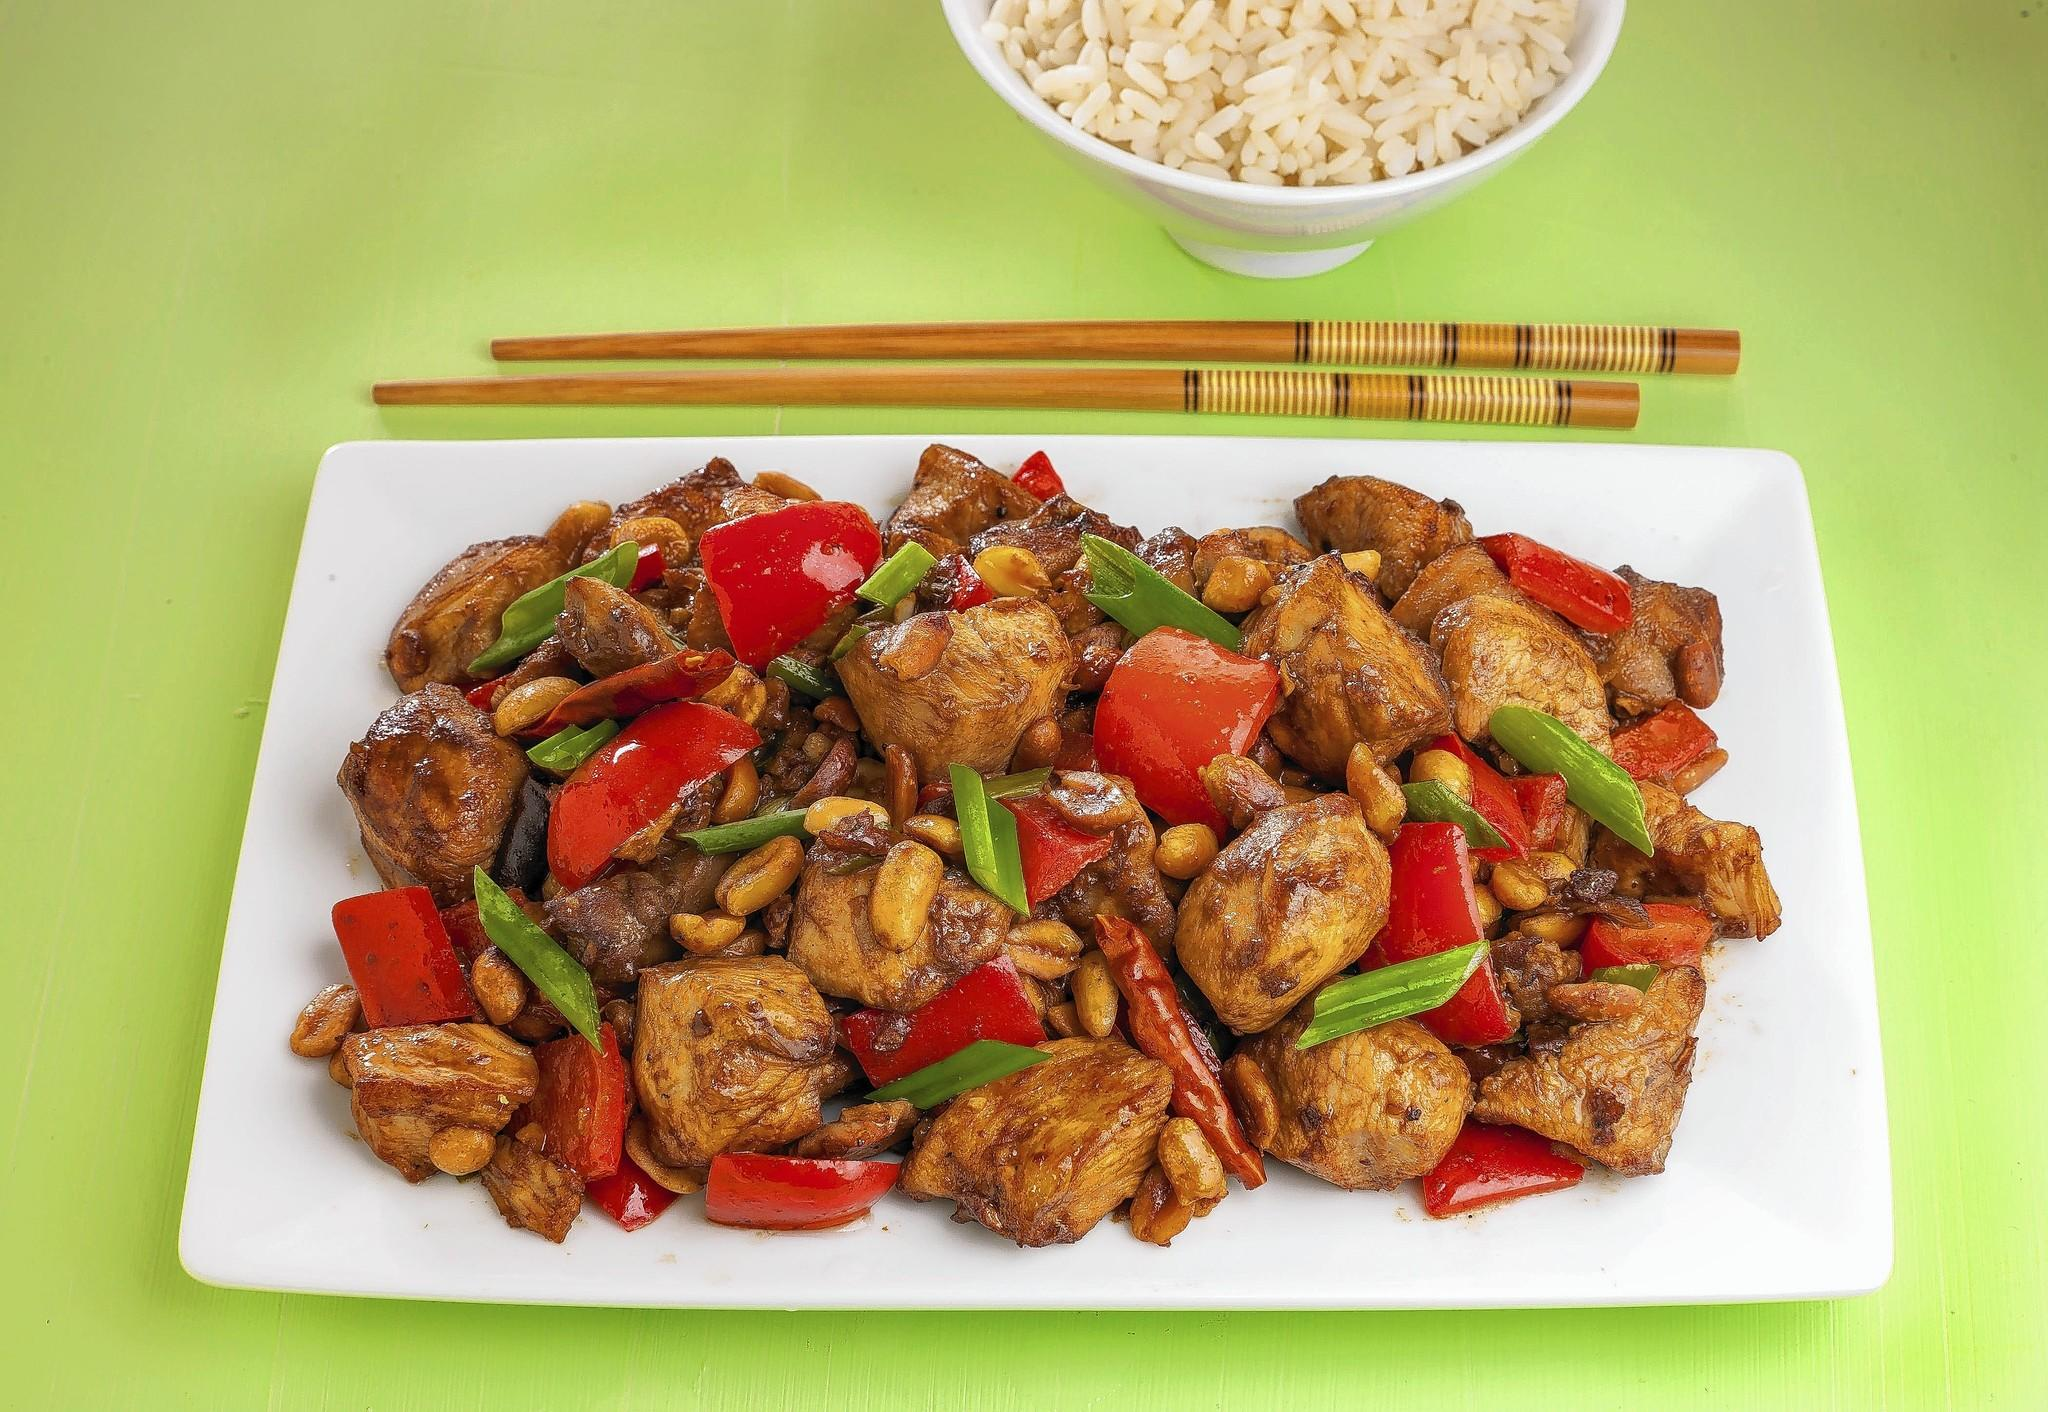 Kung pao chicken cooked by the recipe in the Tribune Studio.